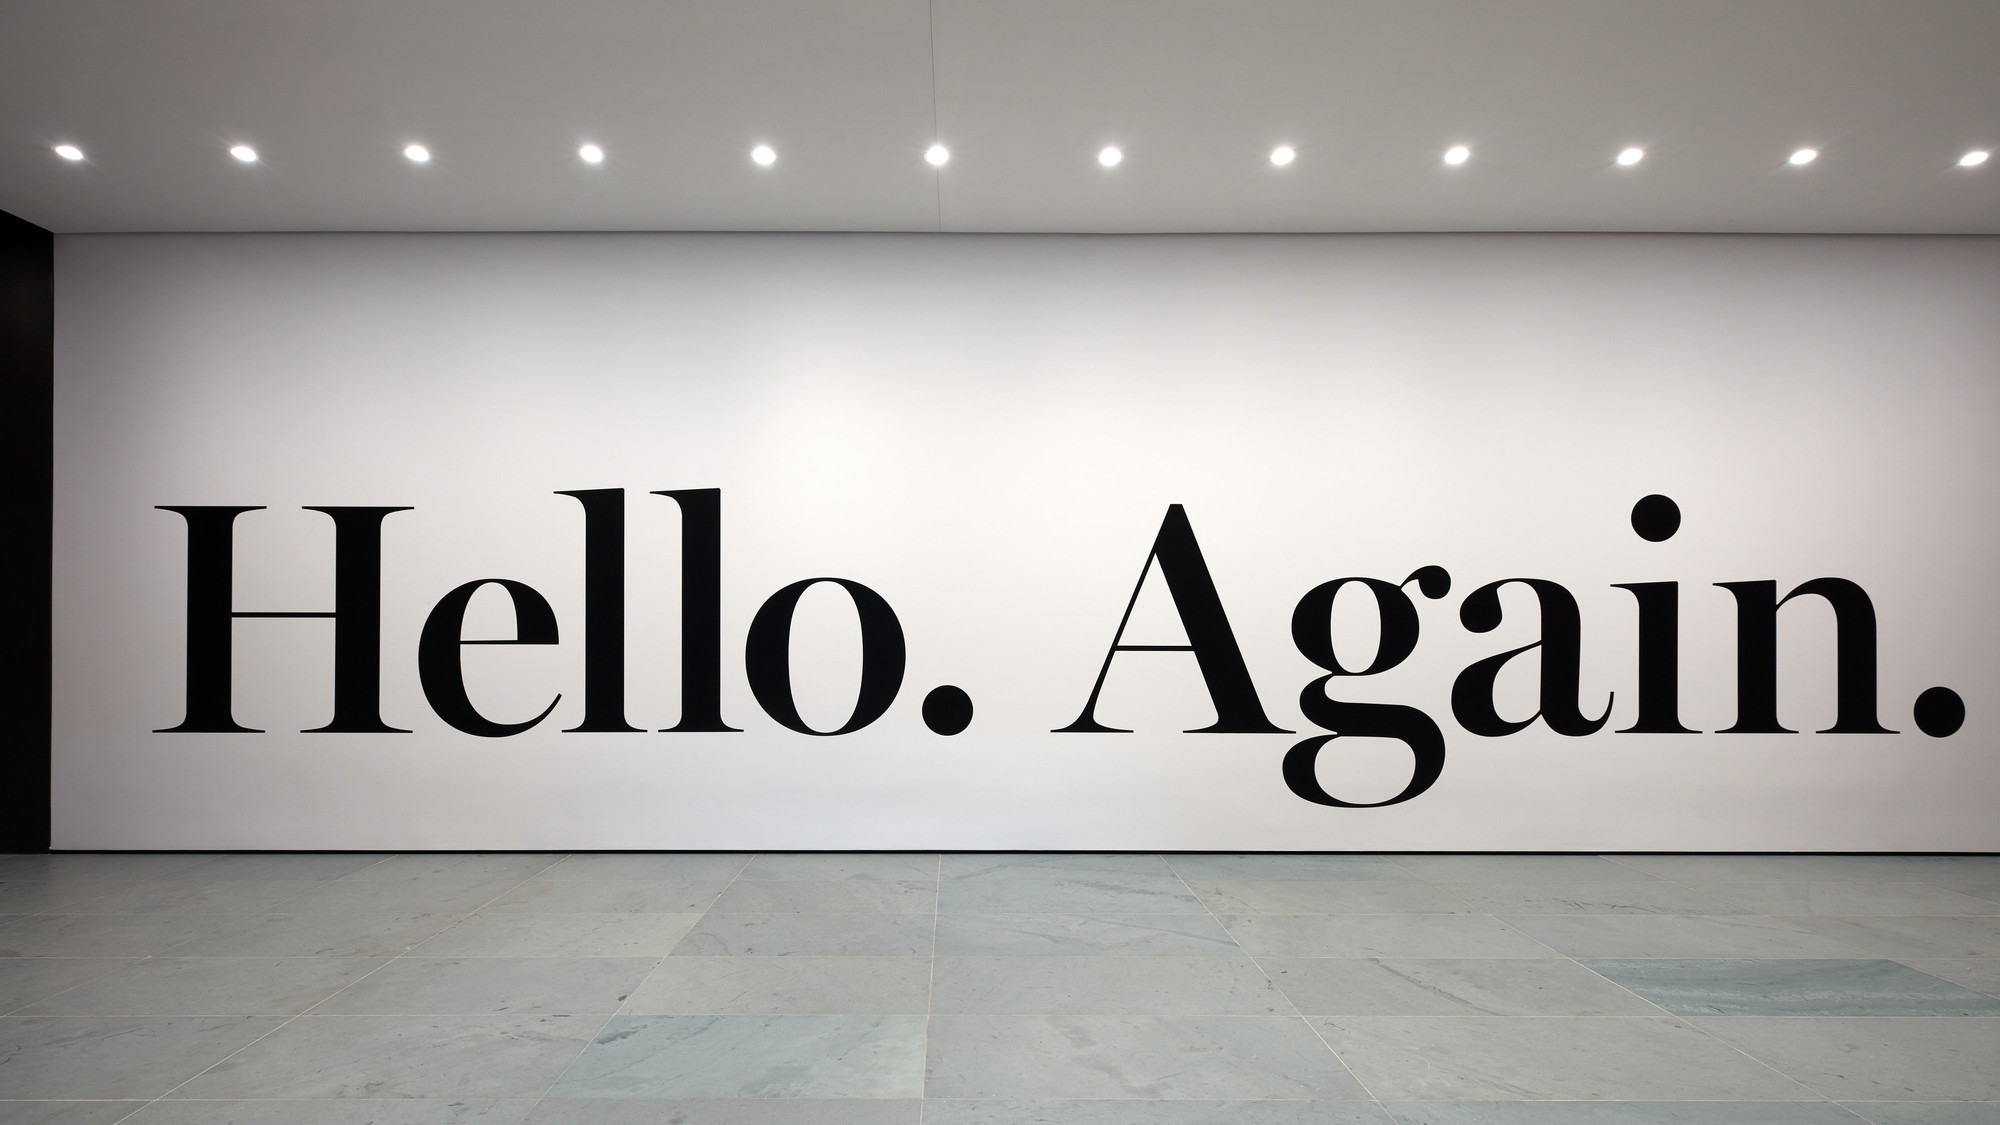 Installation view of the commission hello again. 2013. Matte vinyl, Edition 1; one artist's proof. Acquired on the occasion of the Museum of Modern Art's 2019 reopening. Digital Image © 2019 The Museum of Modern Art, New York. Photo: Heidi Bohnenkamp